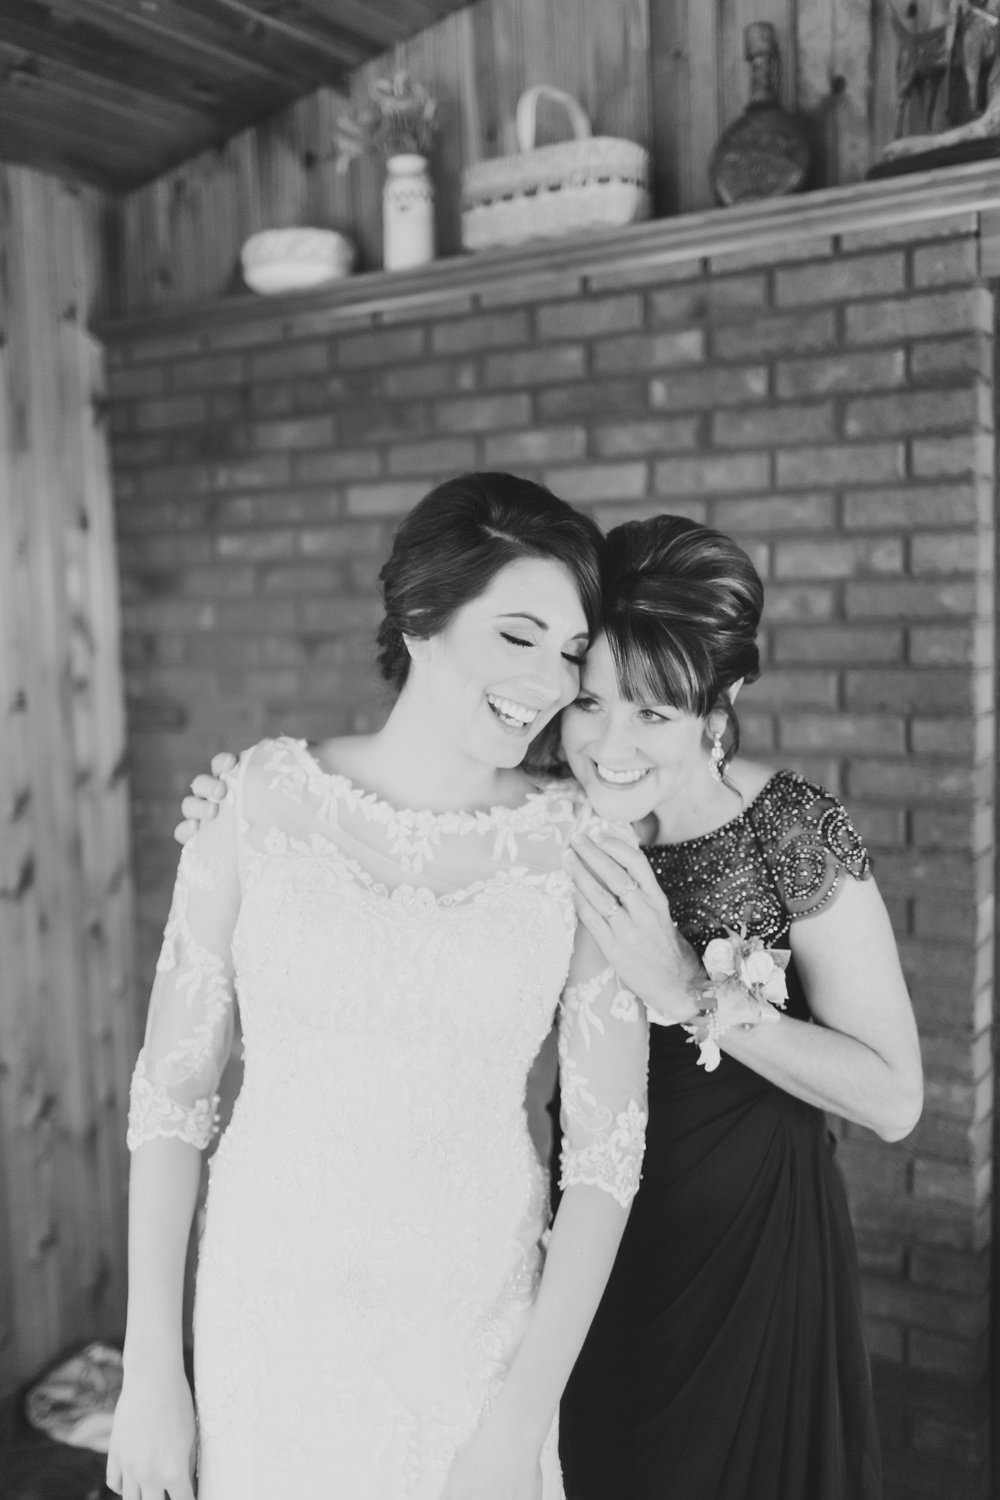 MissouriRusticWedding_StLouisWeddingPhotographer_AliciaDan_CatherineRhodesPhotography-431-Edit.jpg